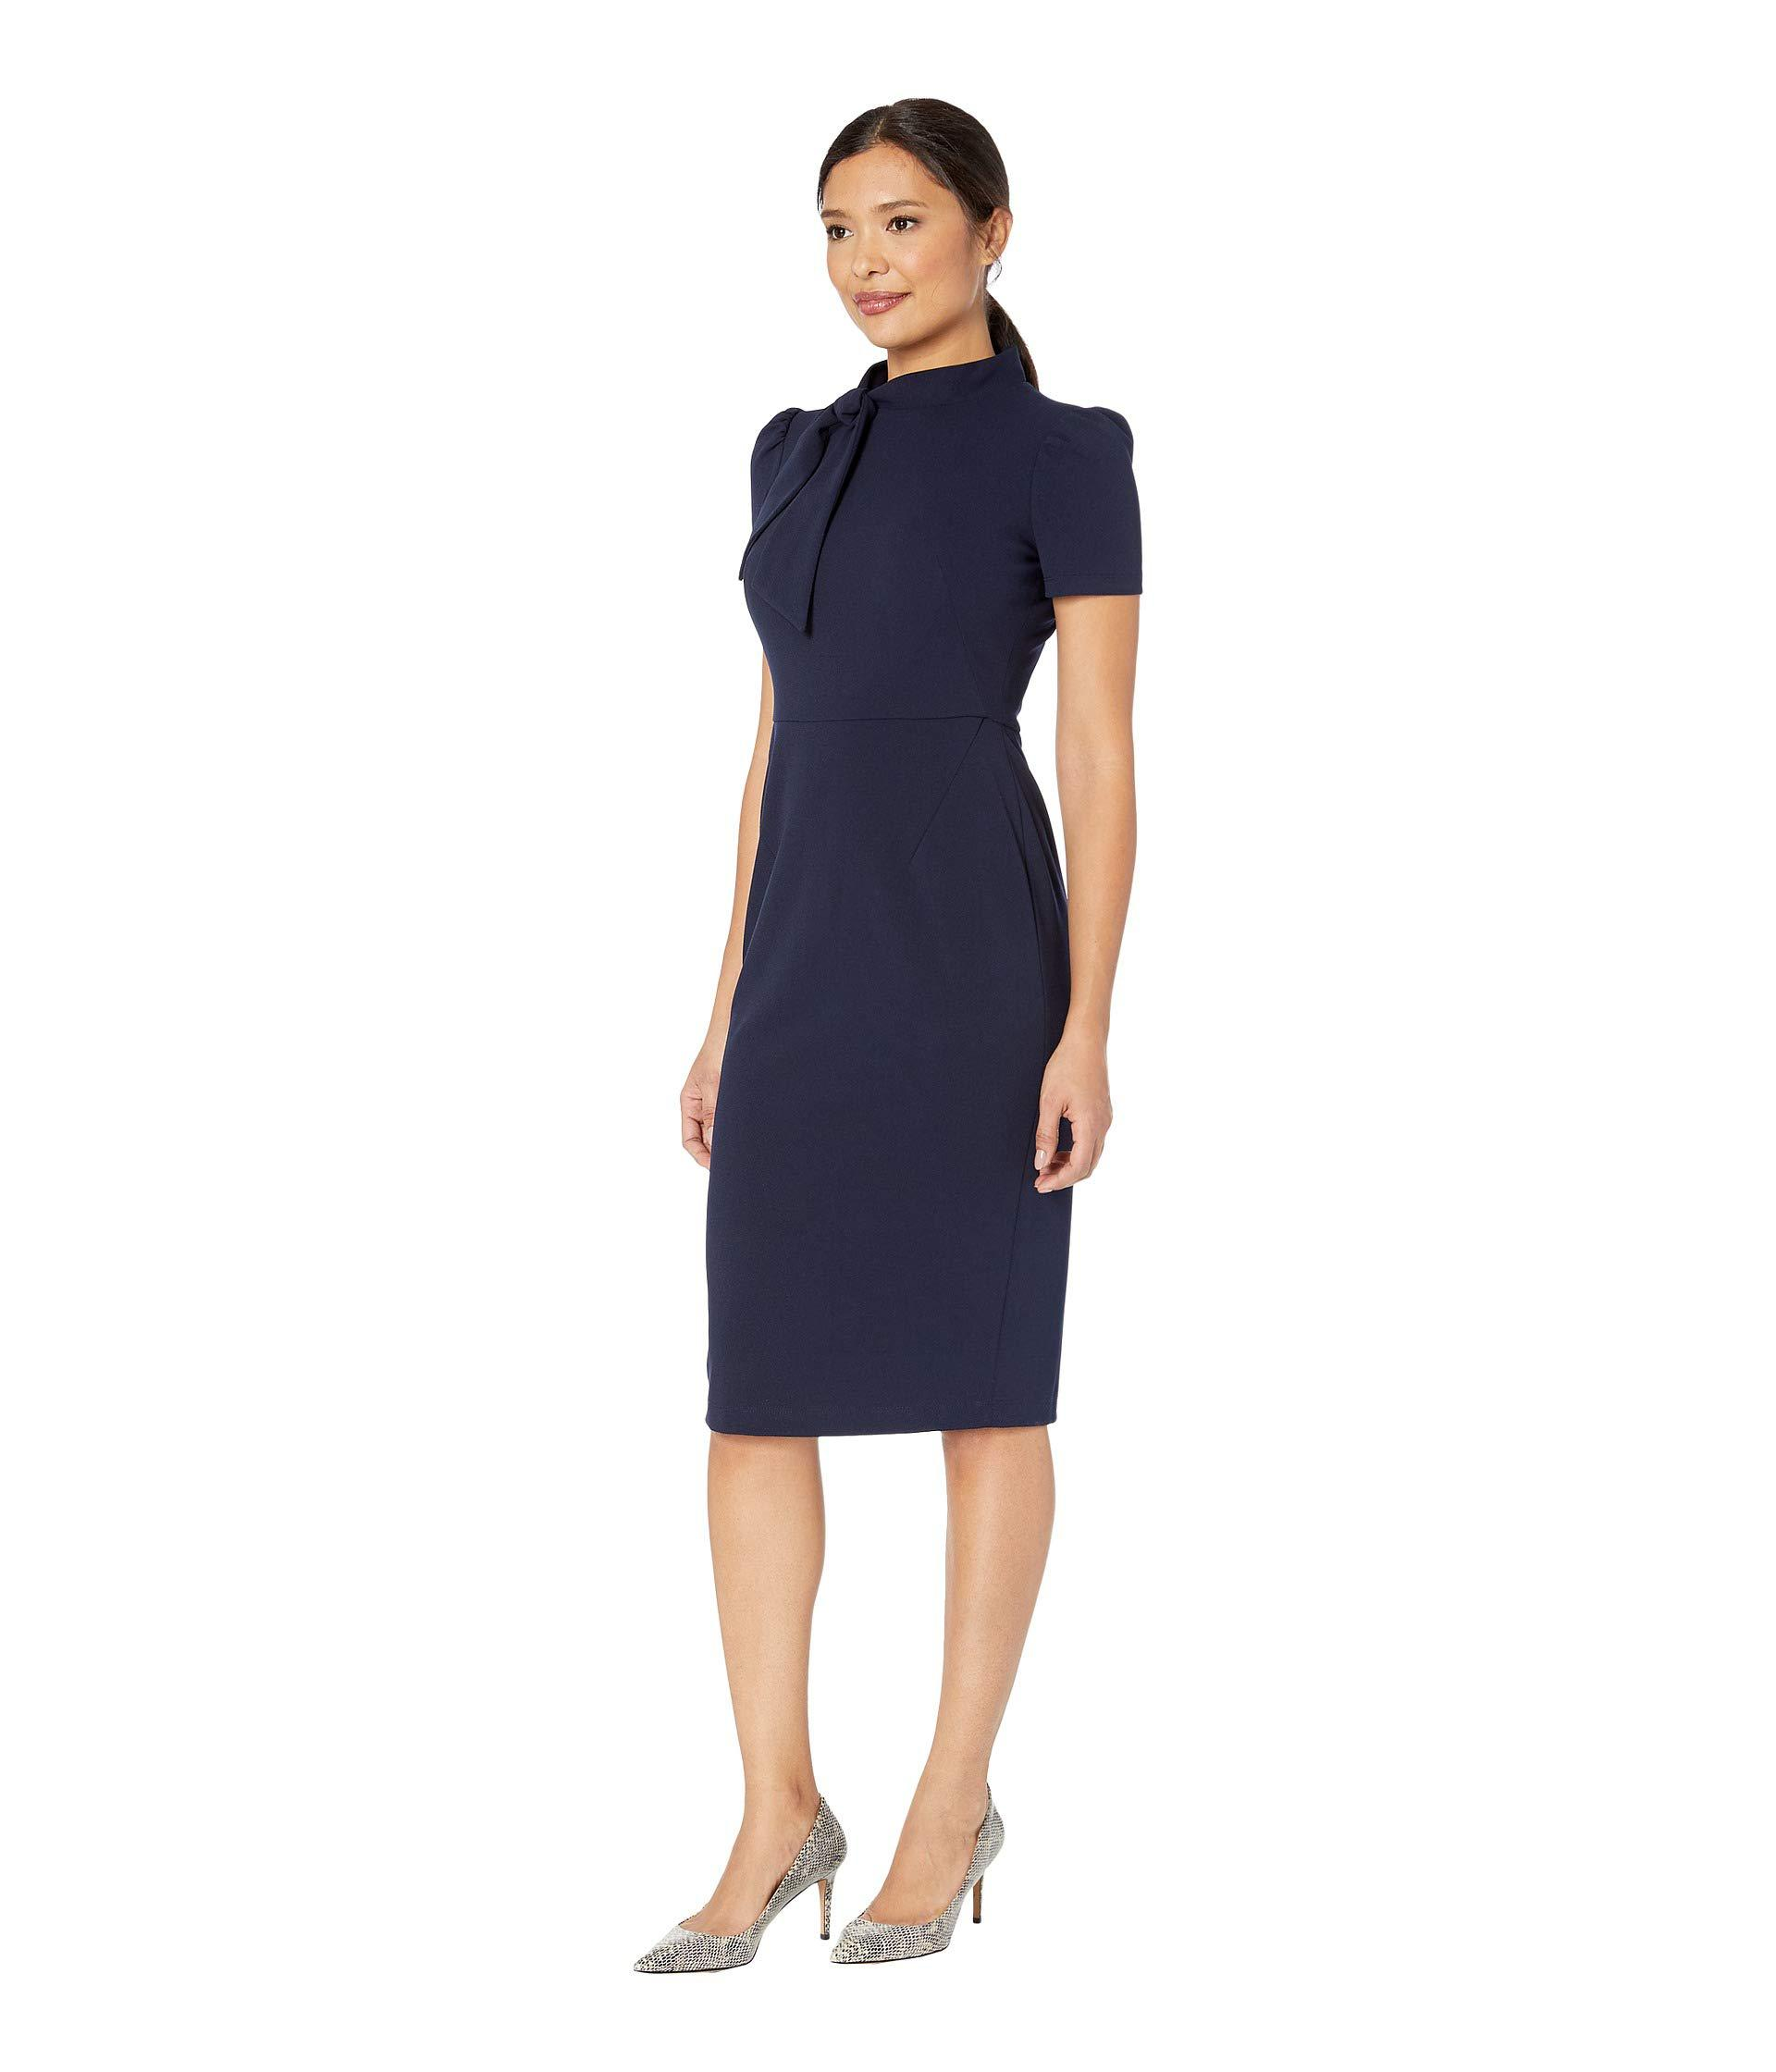 Lyst - Maggy London Margo Midi in Blue - Save 20% 62c2c1d3c